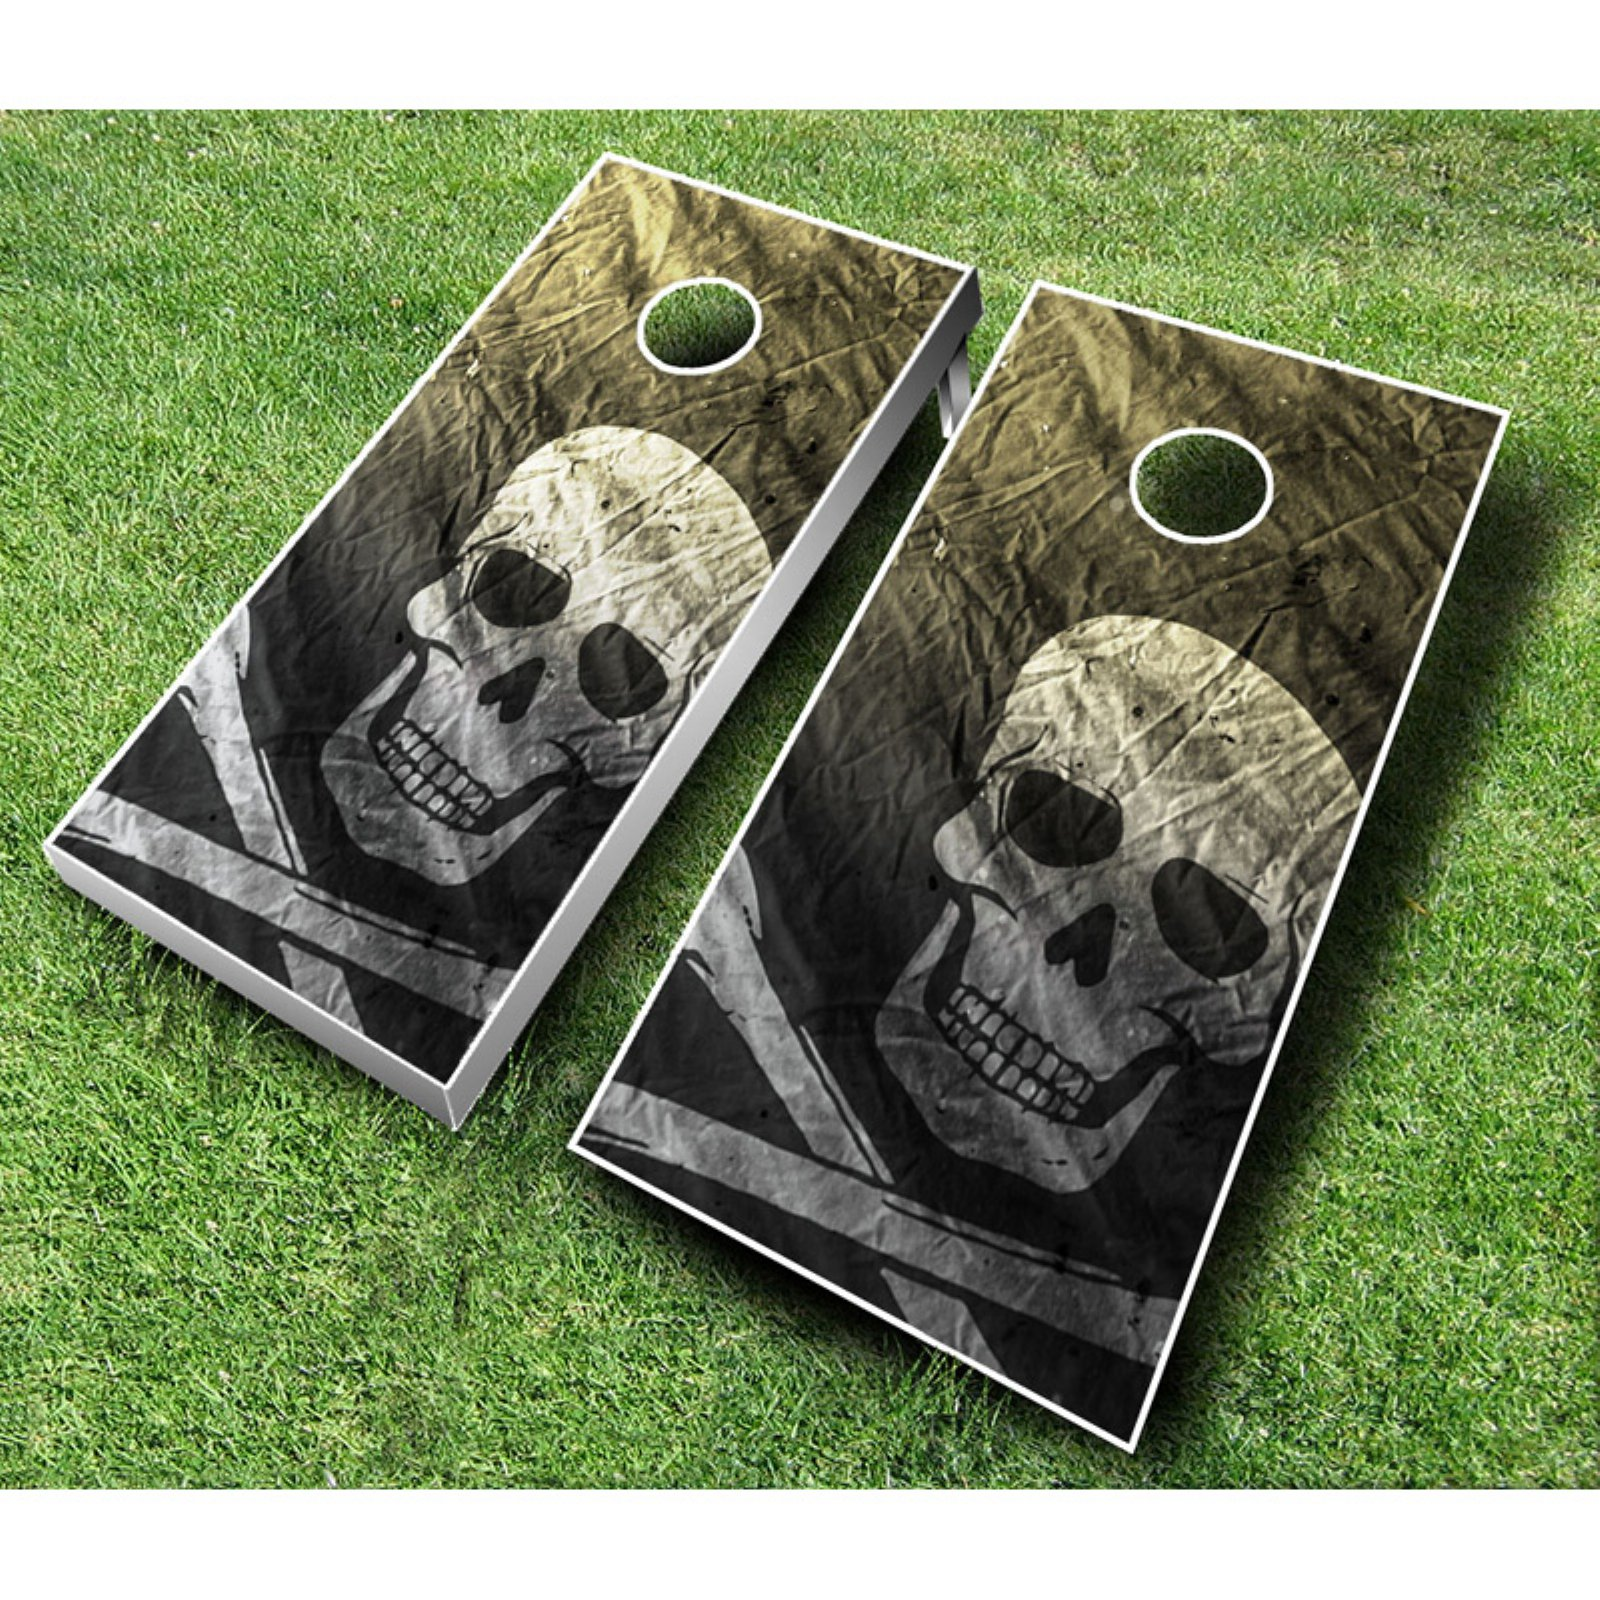 Pirate Cornhole Set with Bags by AJJ Cornhole